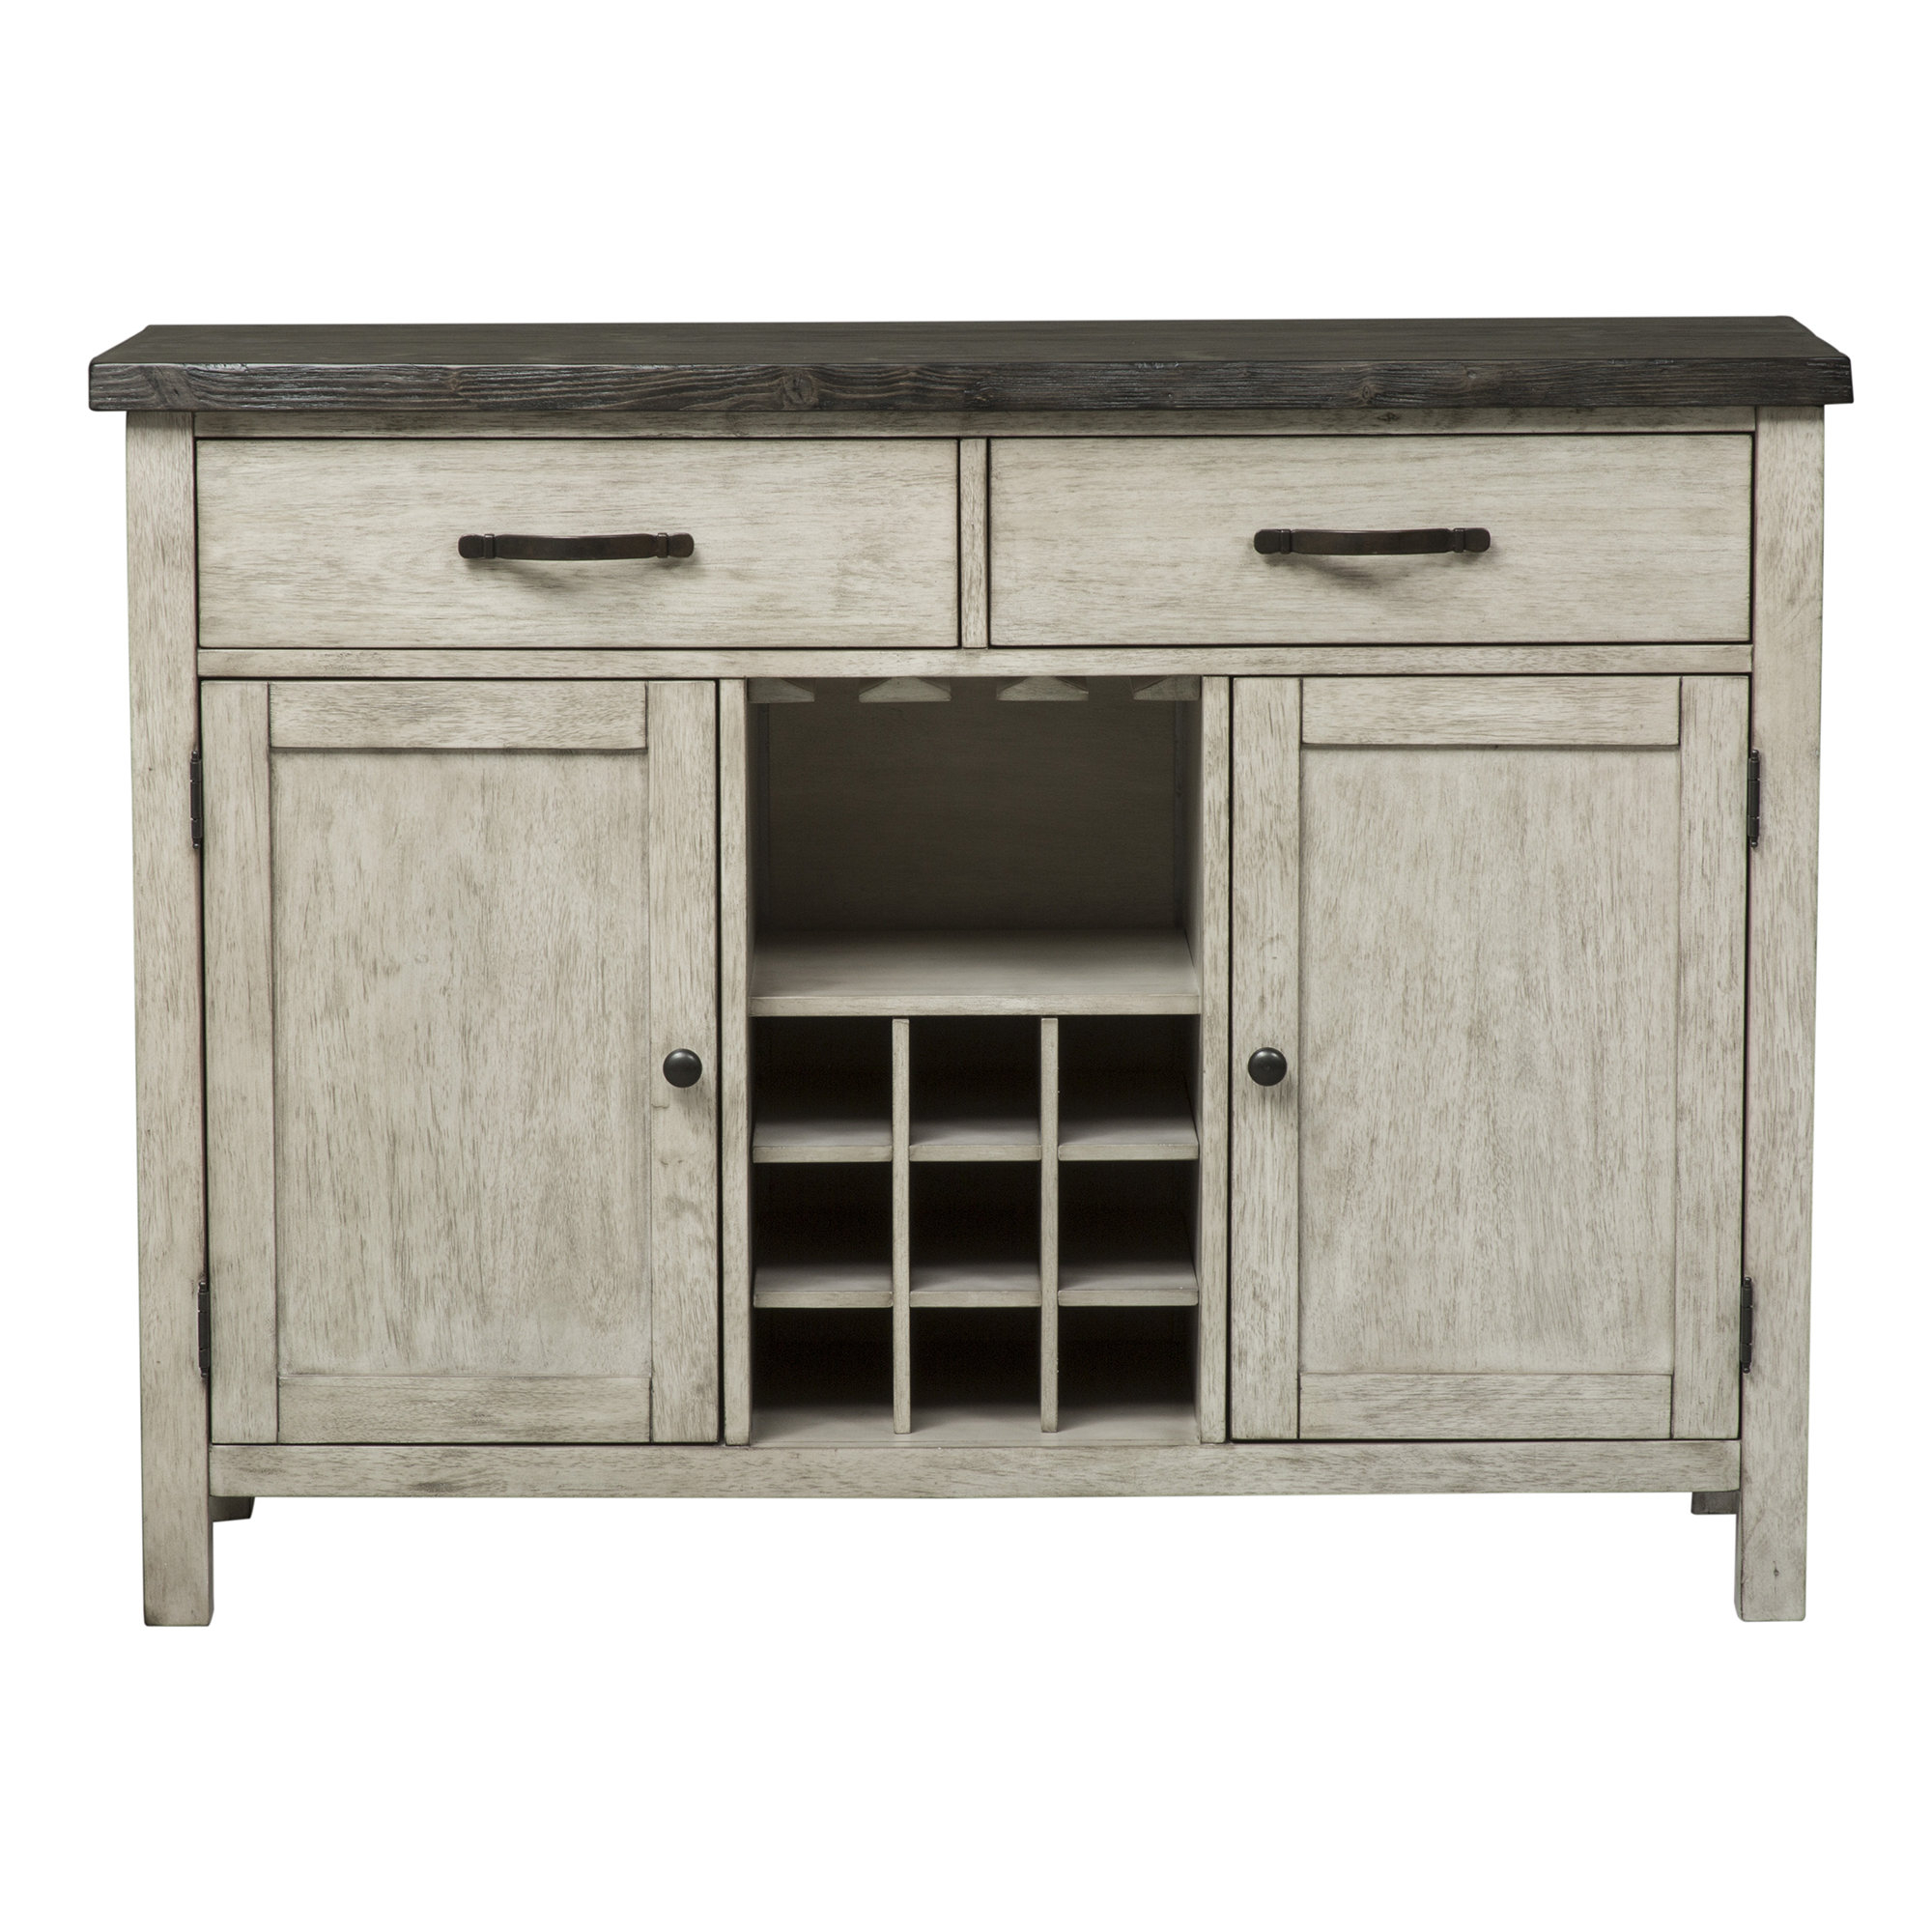 Beames Sideboard Intended For Amityville Sideboards (Image 17 of 30)